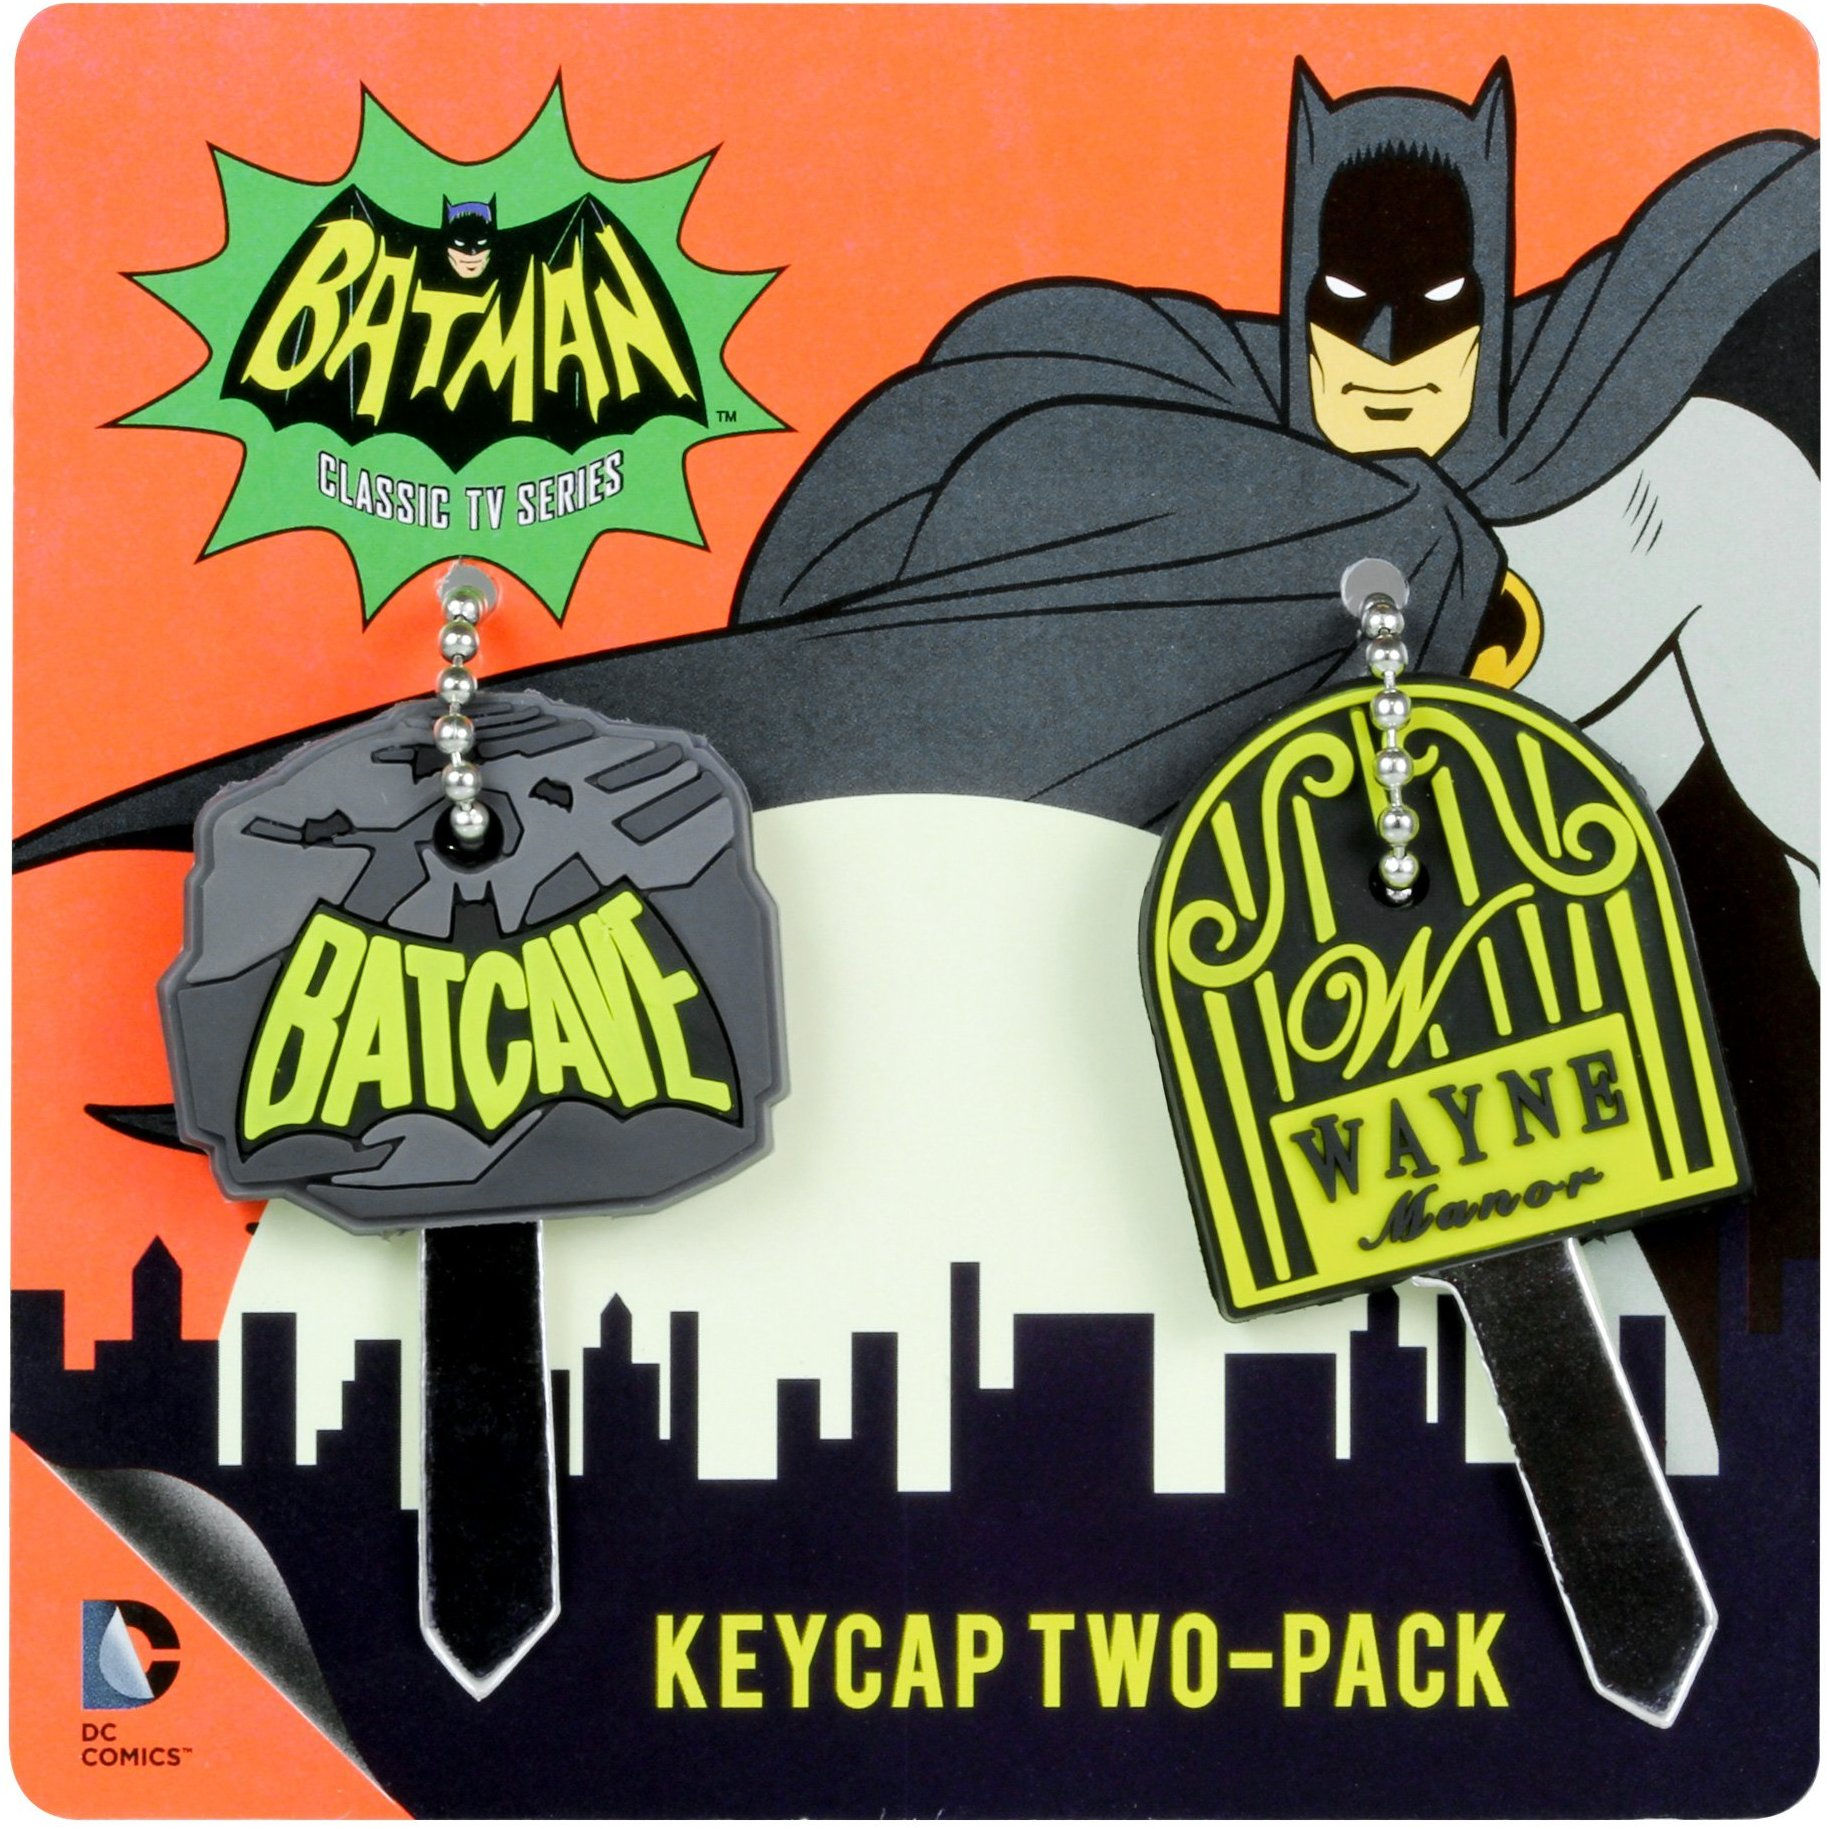 Television Series Of Batman Classic Tv Series Keycap 2 Pack